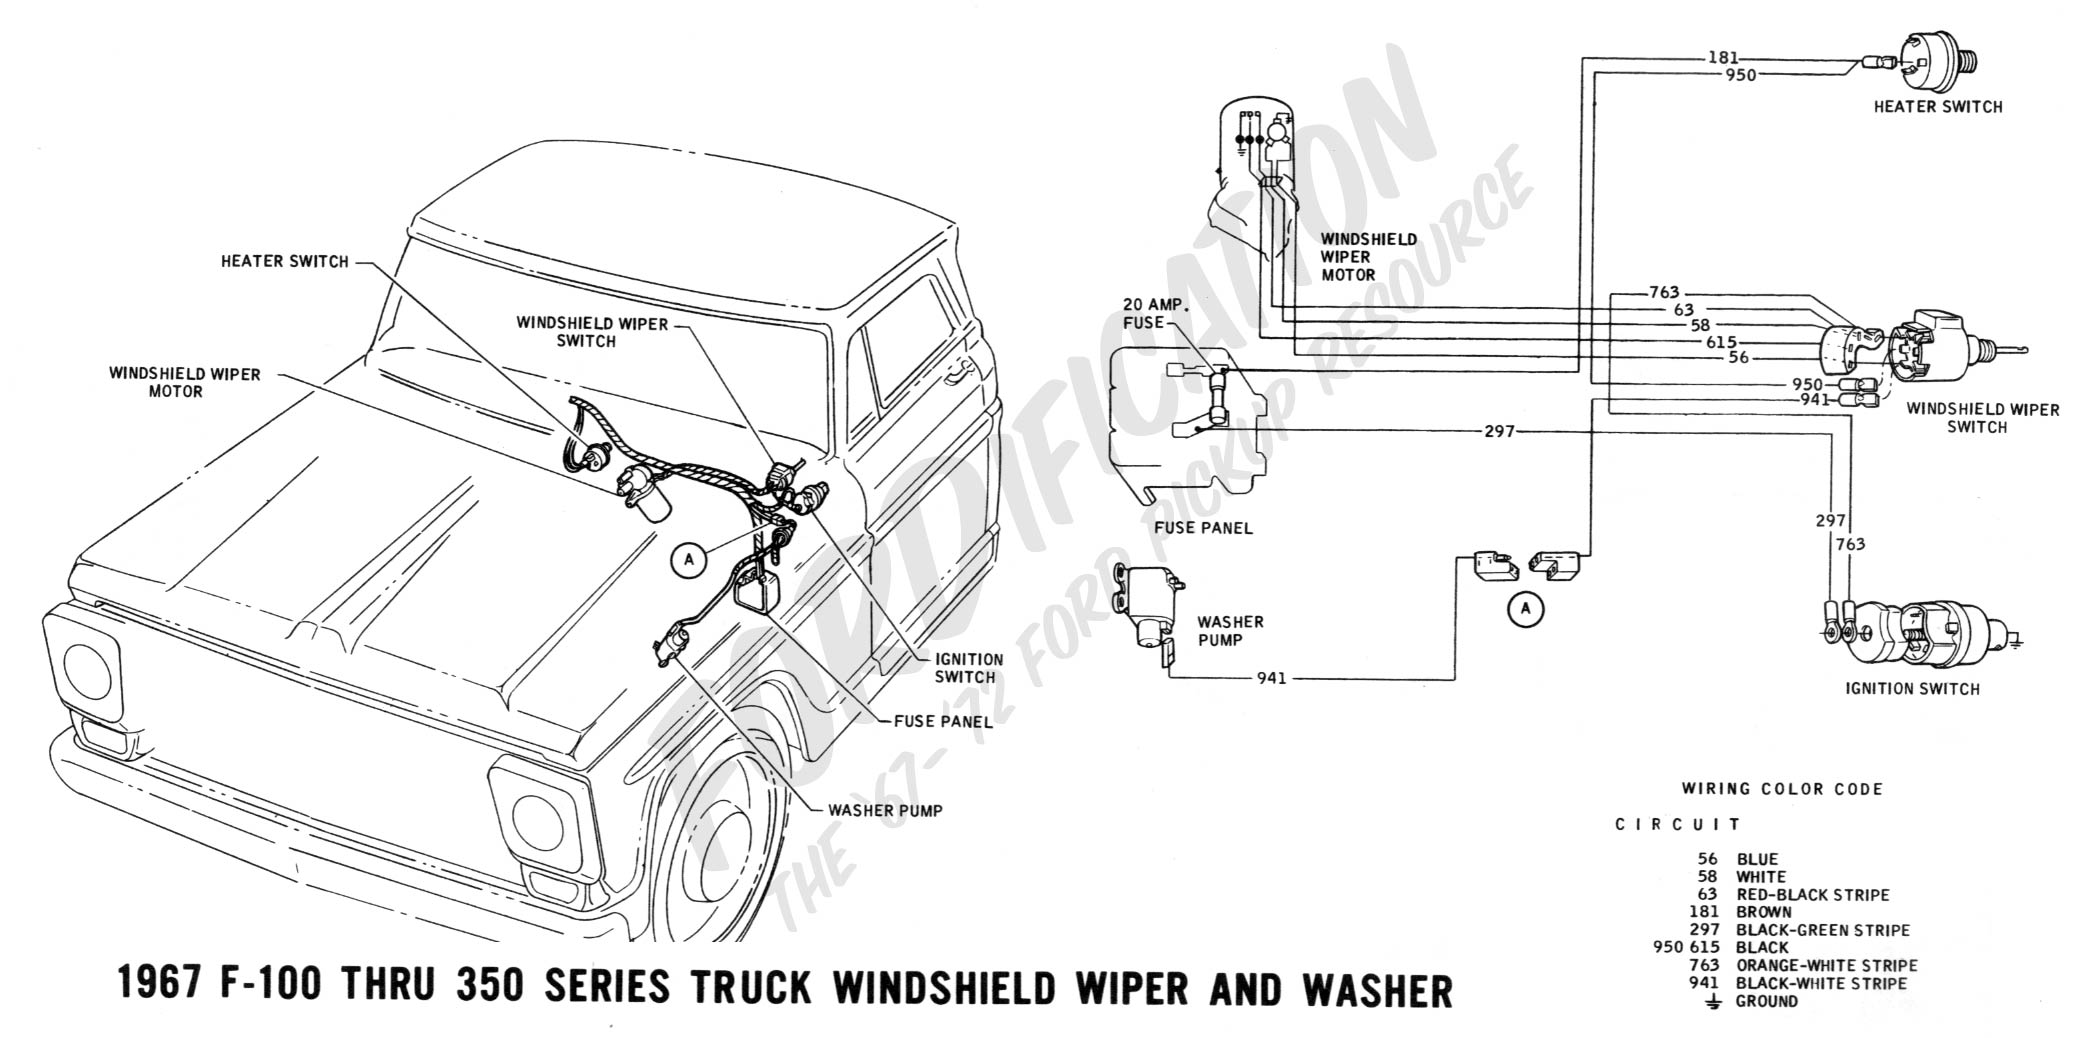 wiring 1967wipers wiper wiring diagram wiper wiring diagram for 1985 chevy vega 1965 ford f100 wiring diagram at crackthecode.co